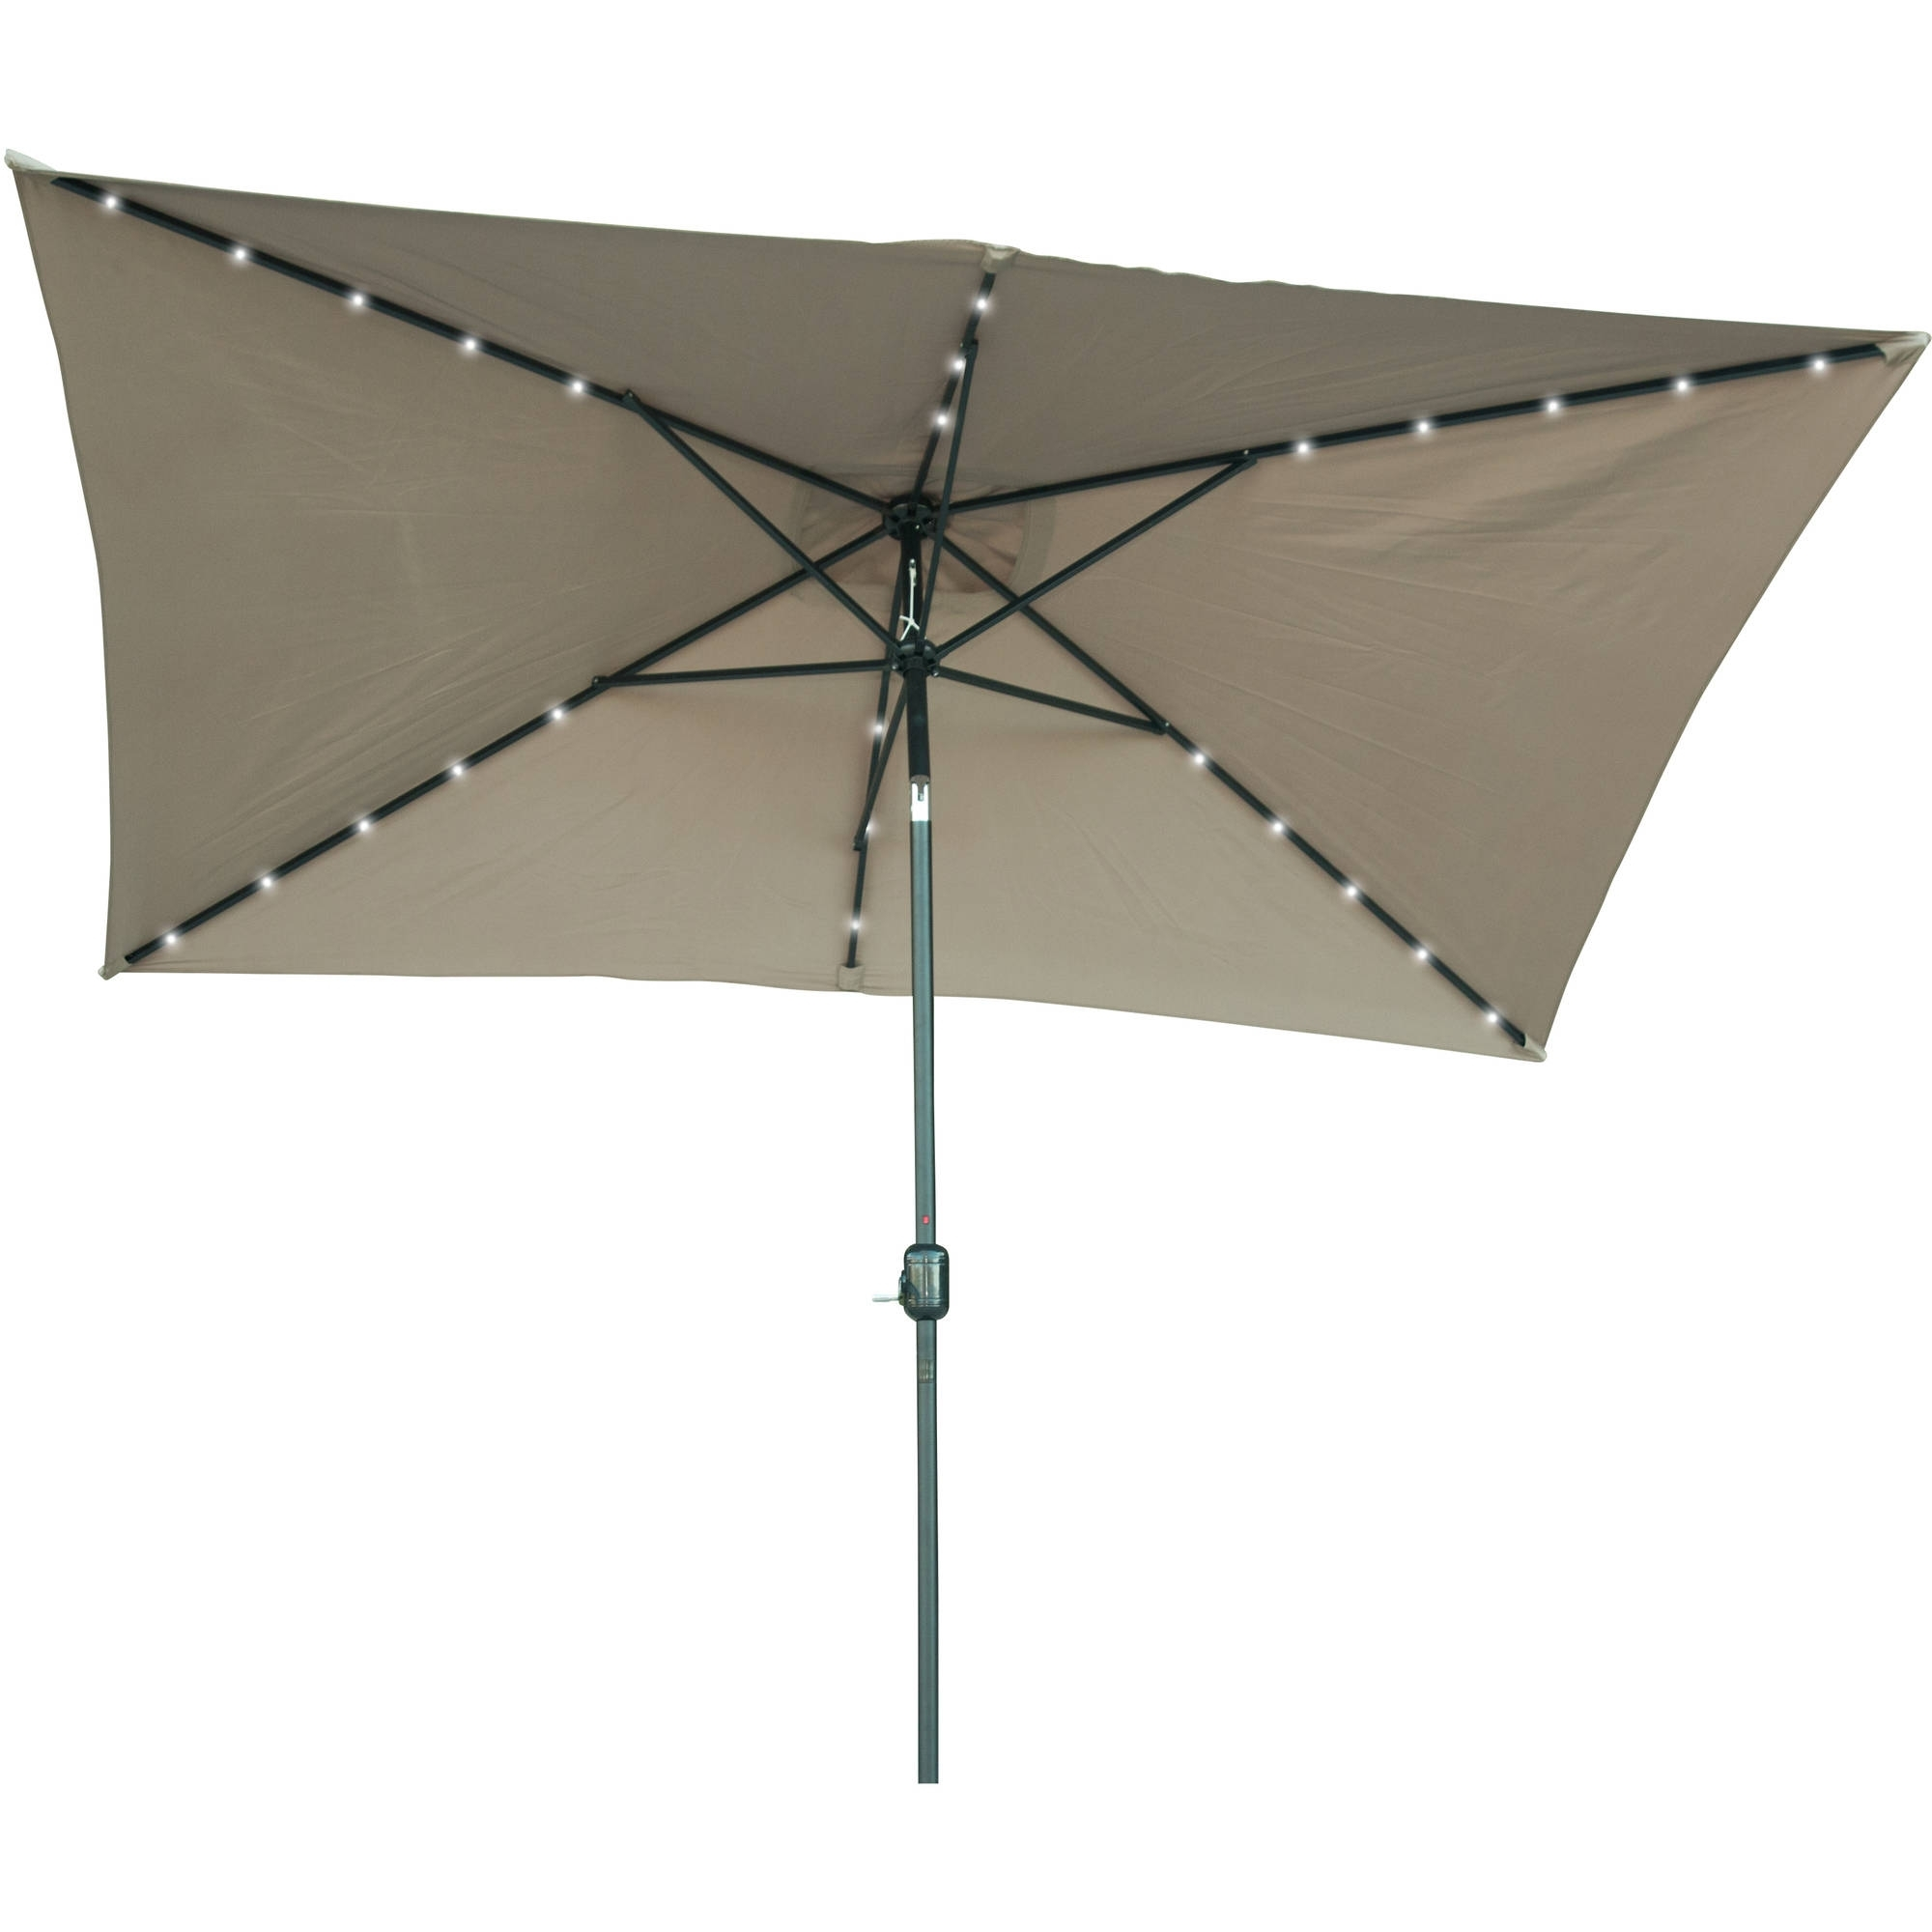 Patio Umbrellas With Lights Inside Well Liked Rectangular Solar Powered Led Lighted Patio Umbrella – 10' X  (View 16 of 20)